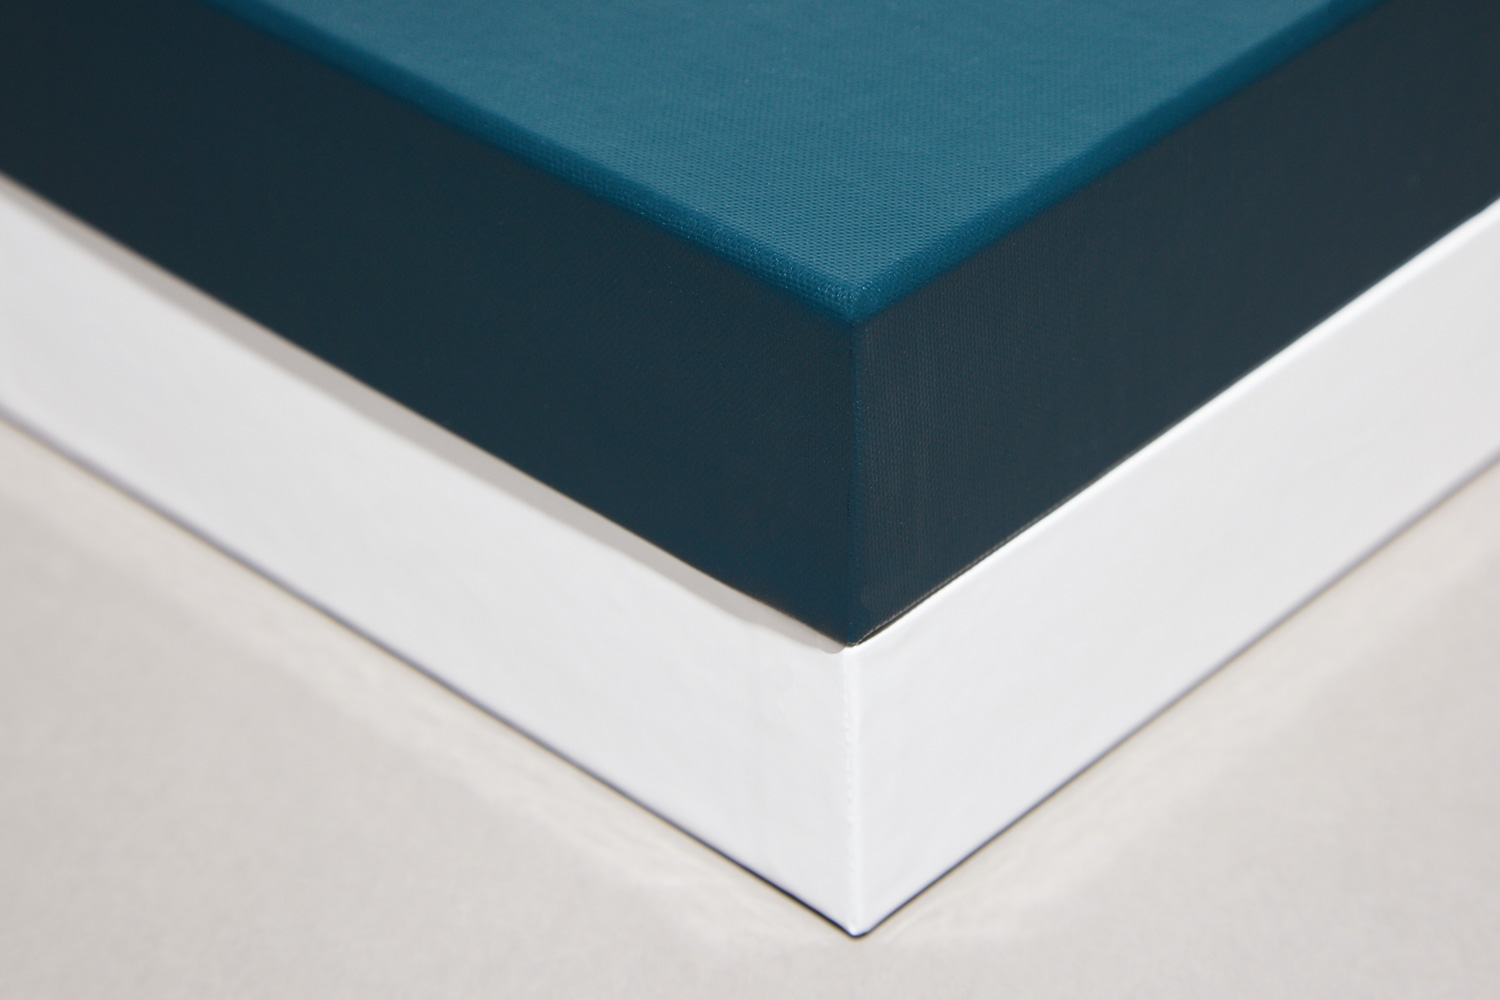 Progress Packaging Luxury Hand Made Boxes Custom Made Paper Over Board Fromental Gold Foiled Bespoke Presentation Retail